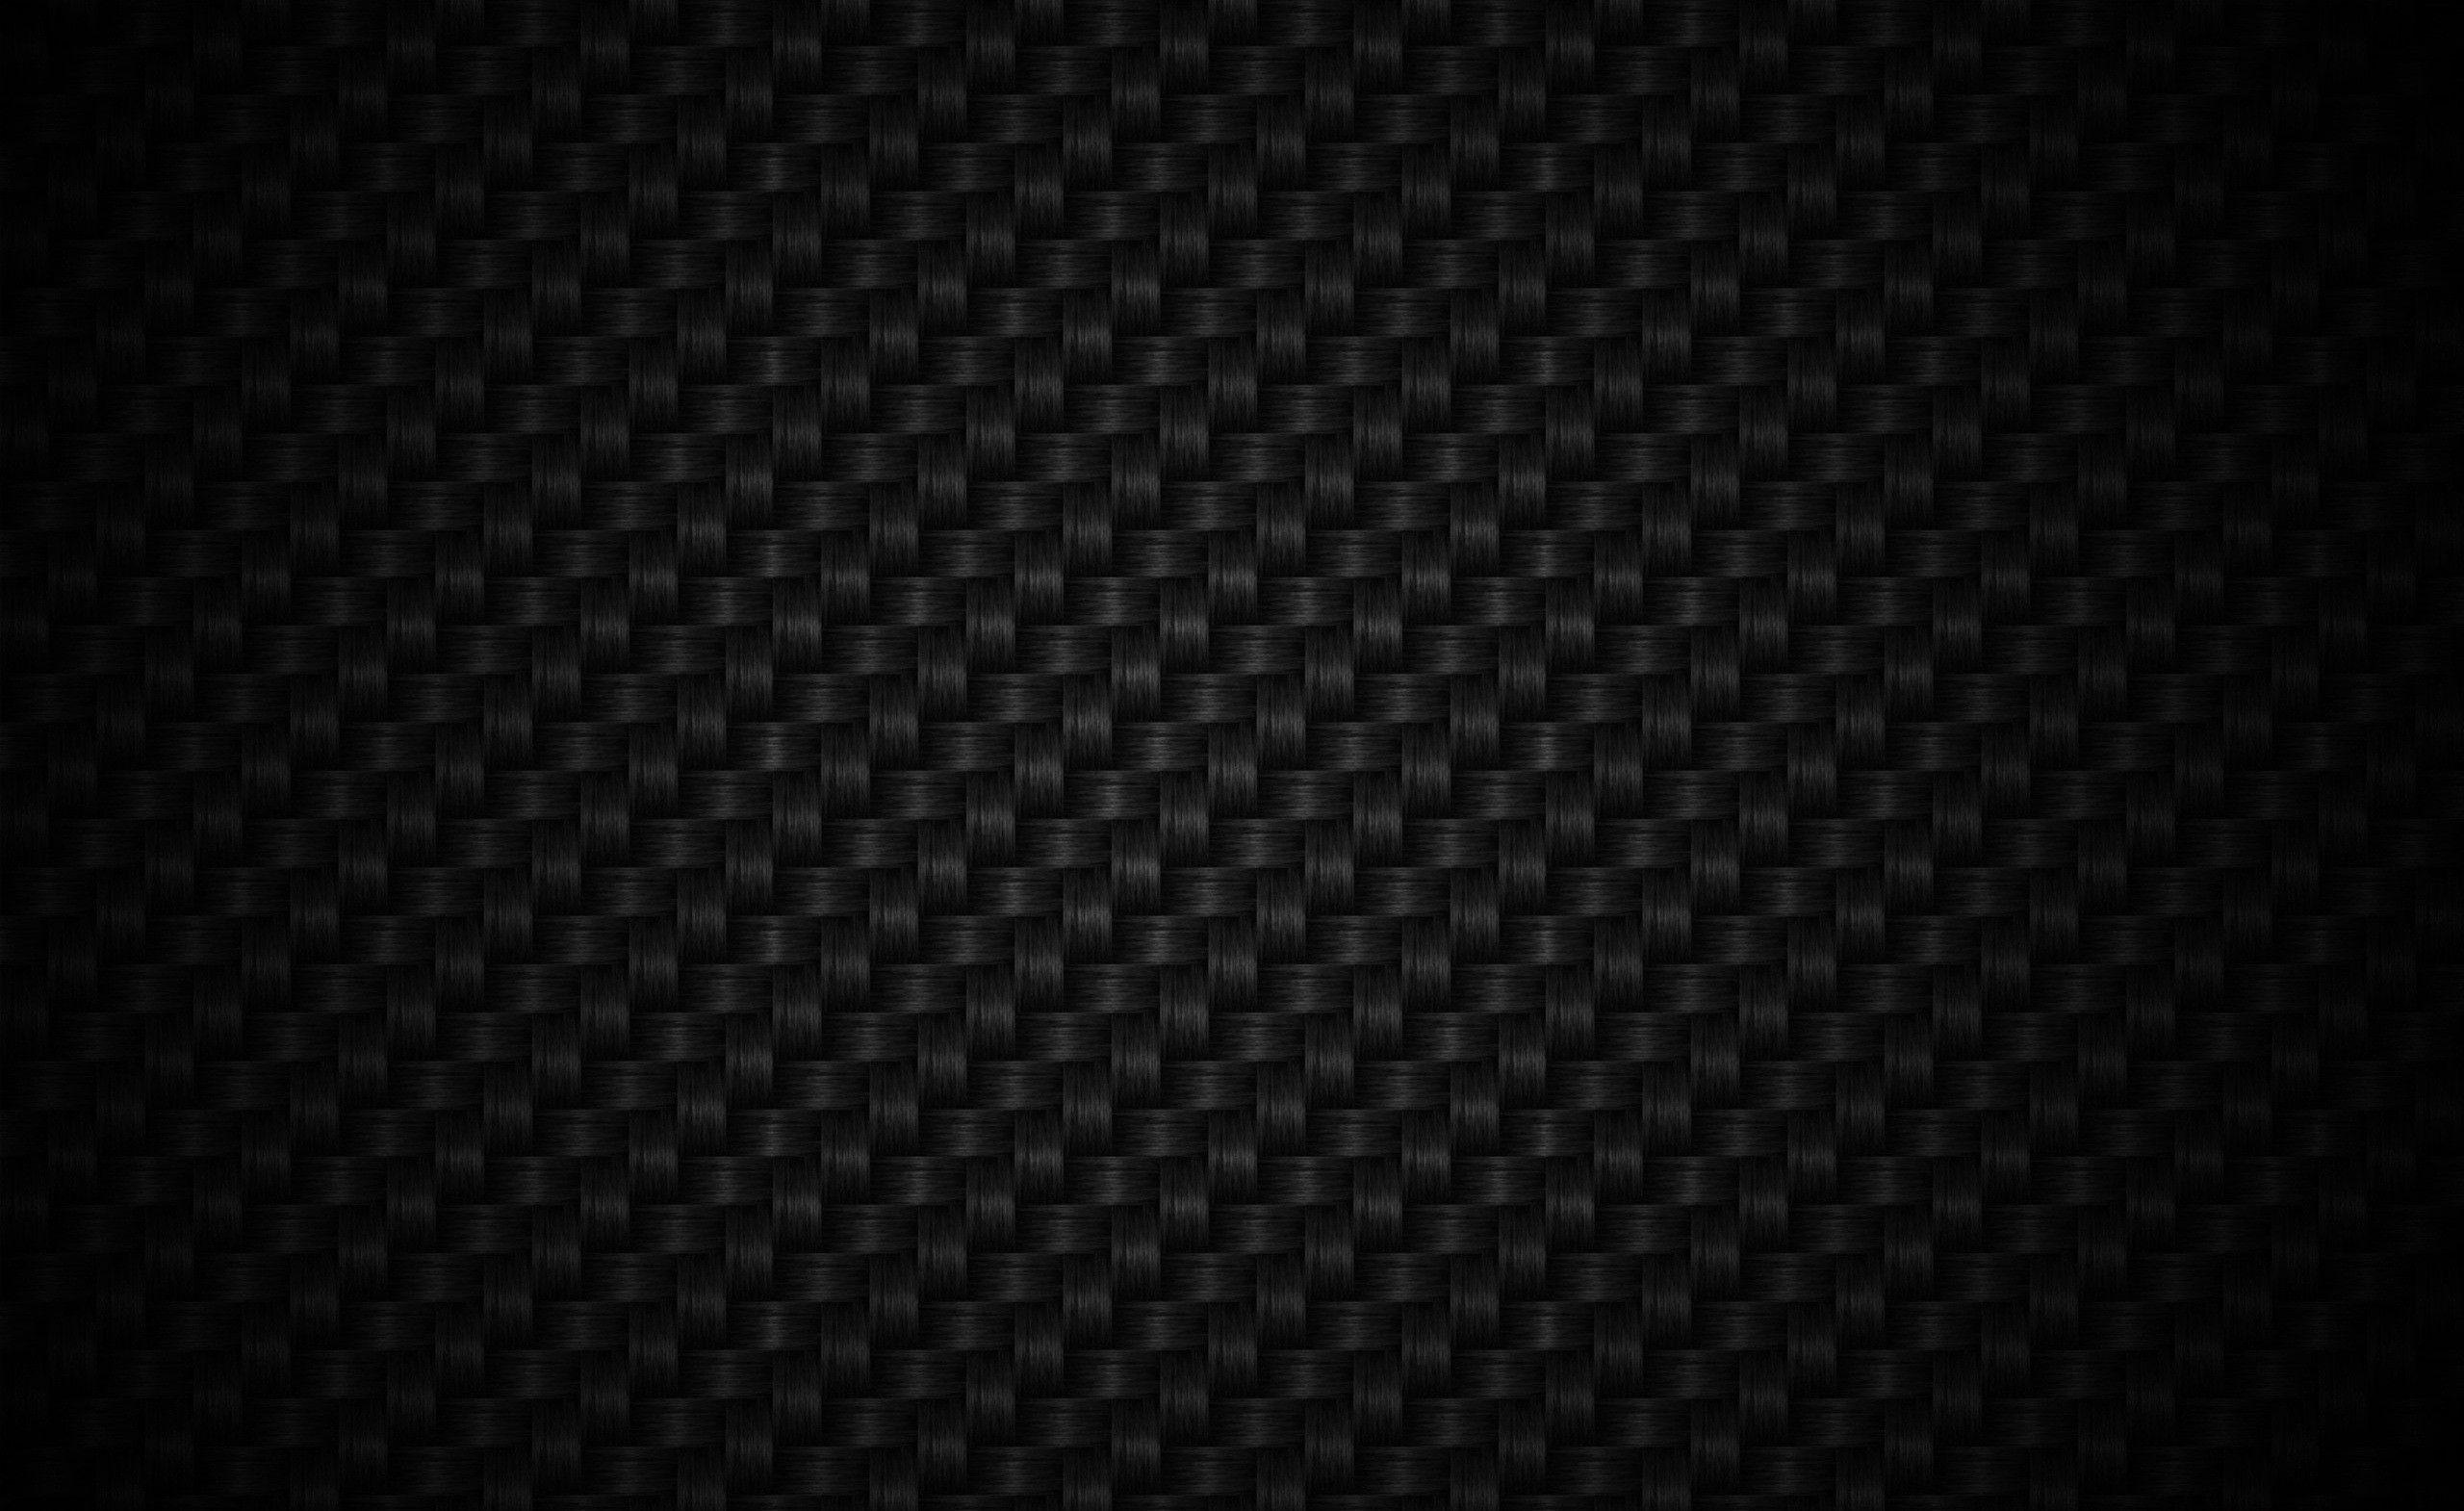 Wallpapers For > White Carbon Fiber Wallpapers